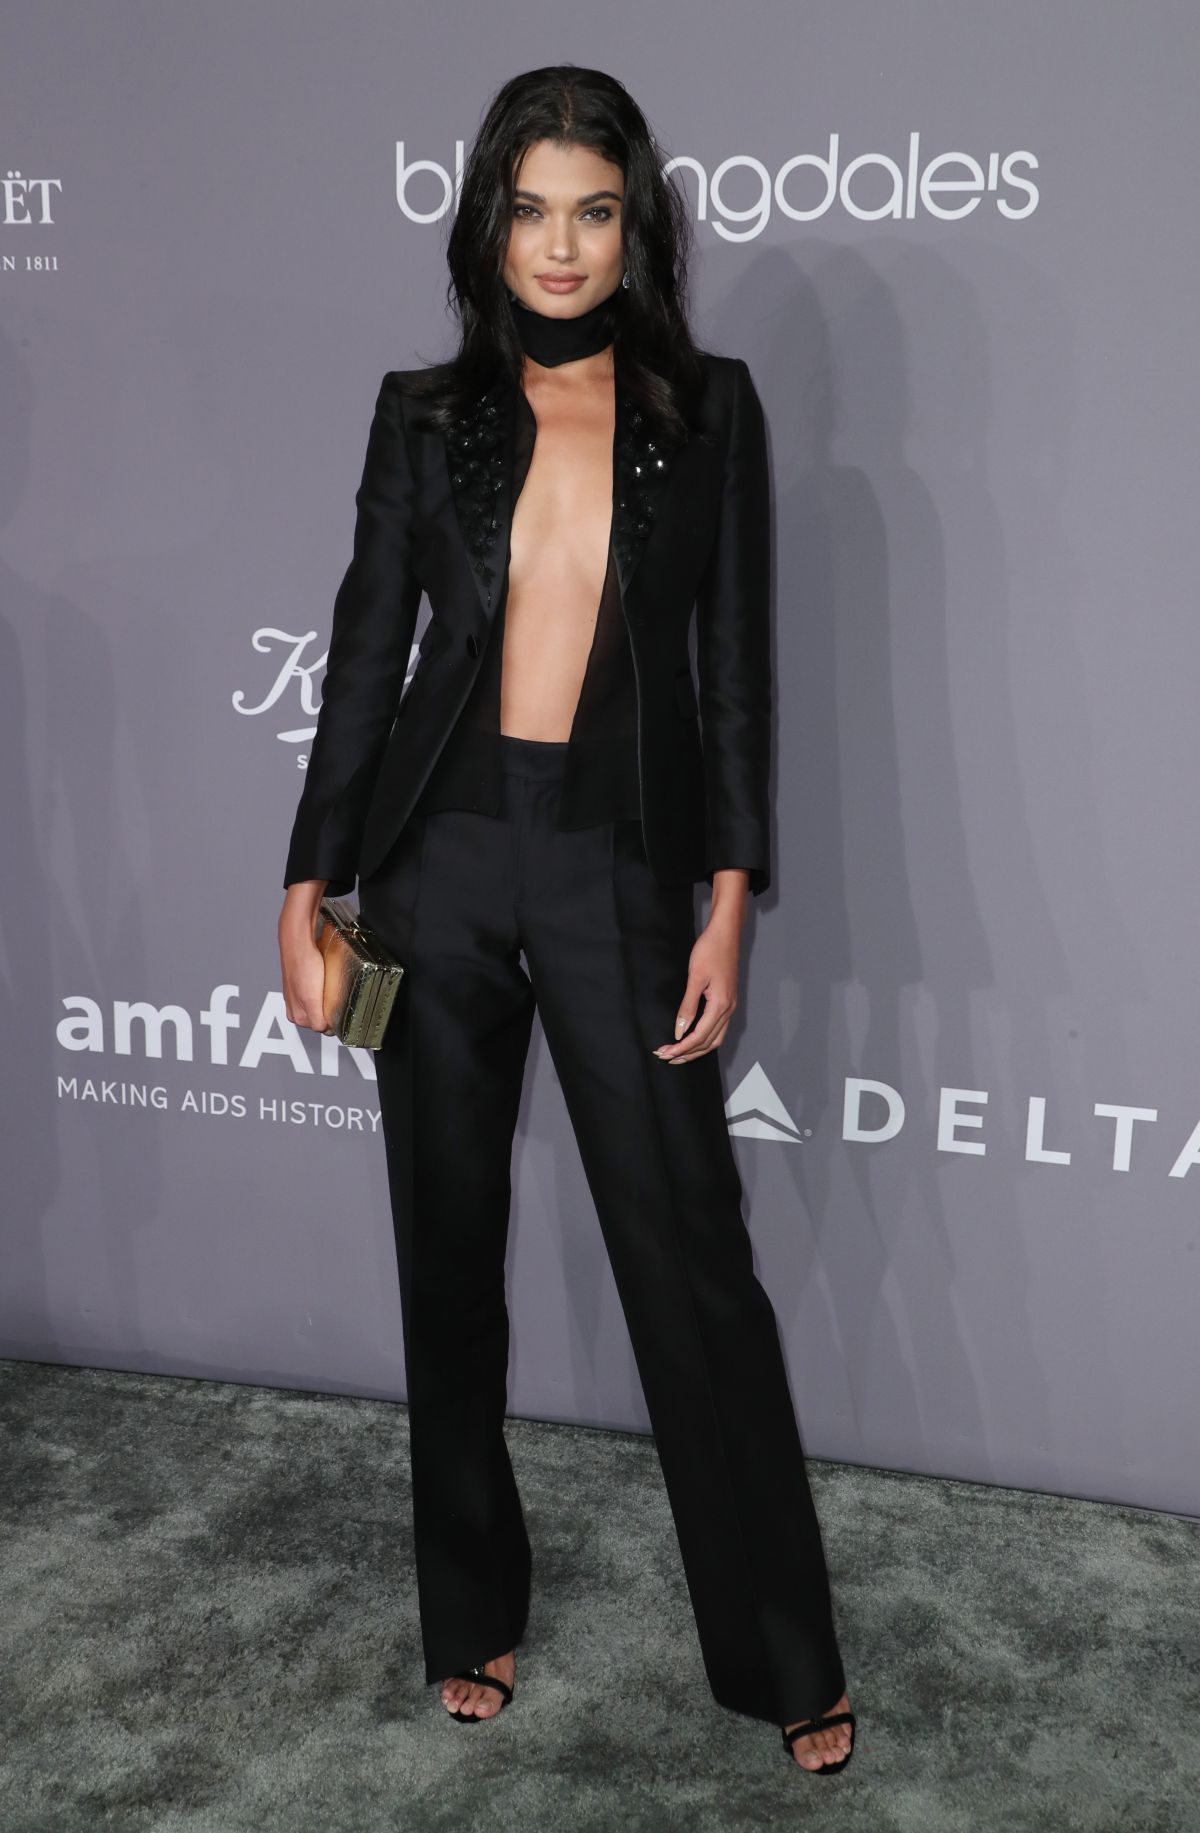 daniela-braga-at-amfar-gala-2018-in-new-york-02-07-2018-2.jpg